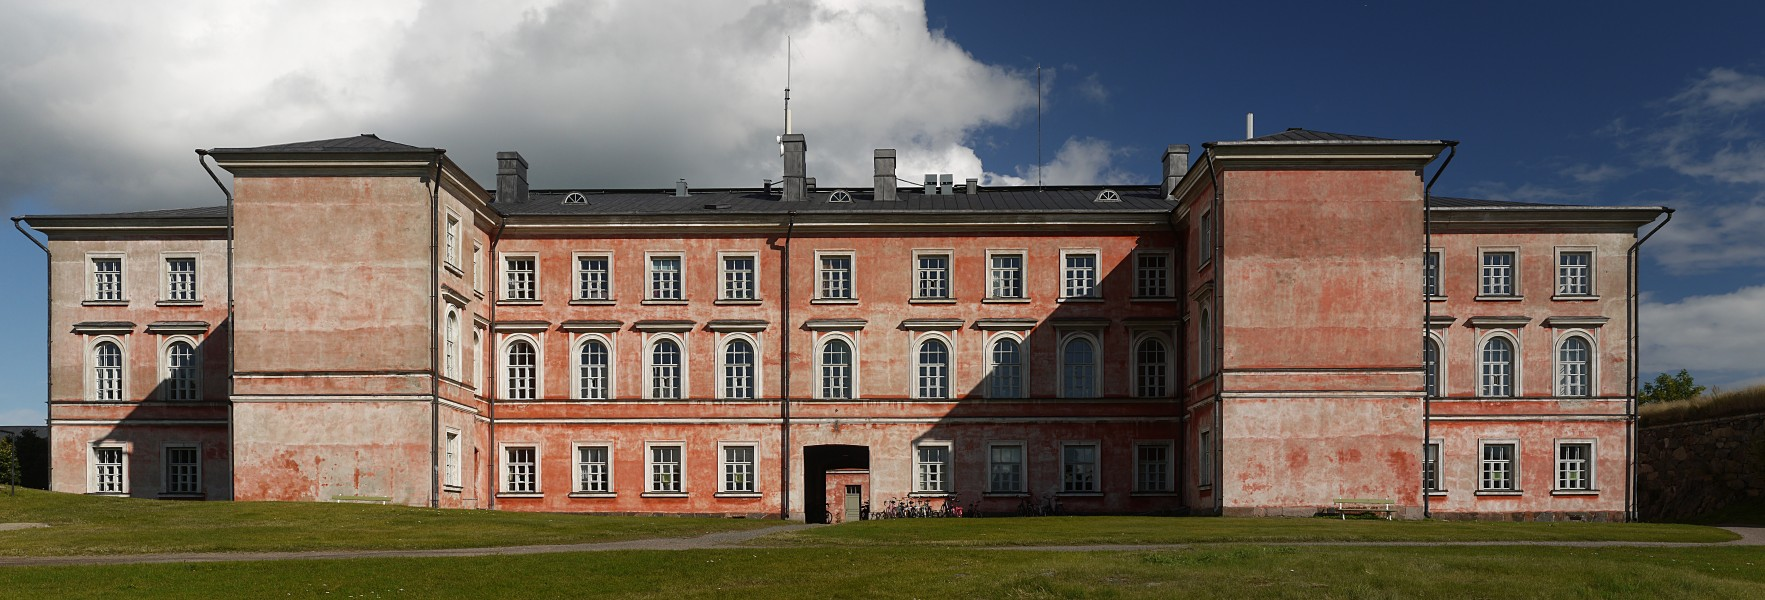 Vaasa Barracks